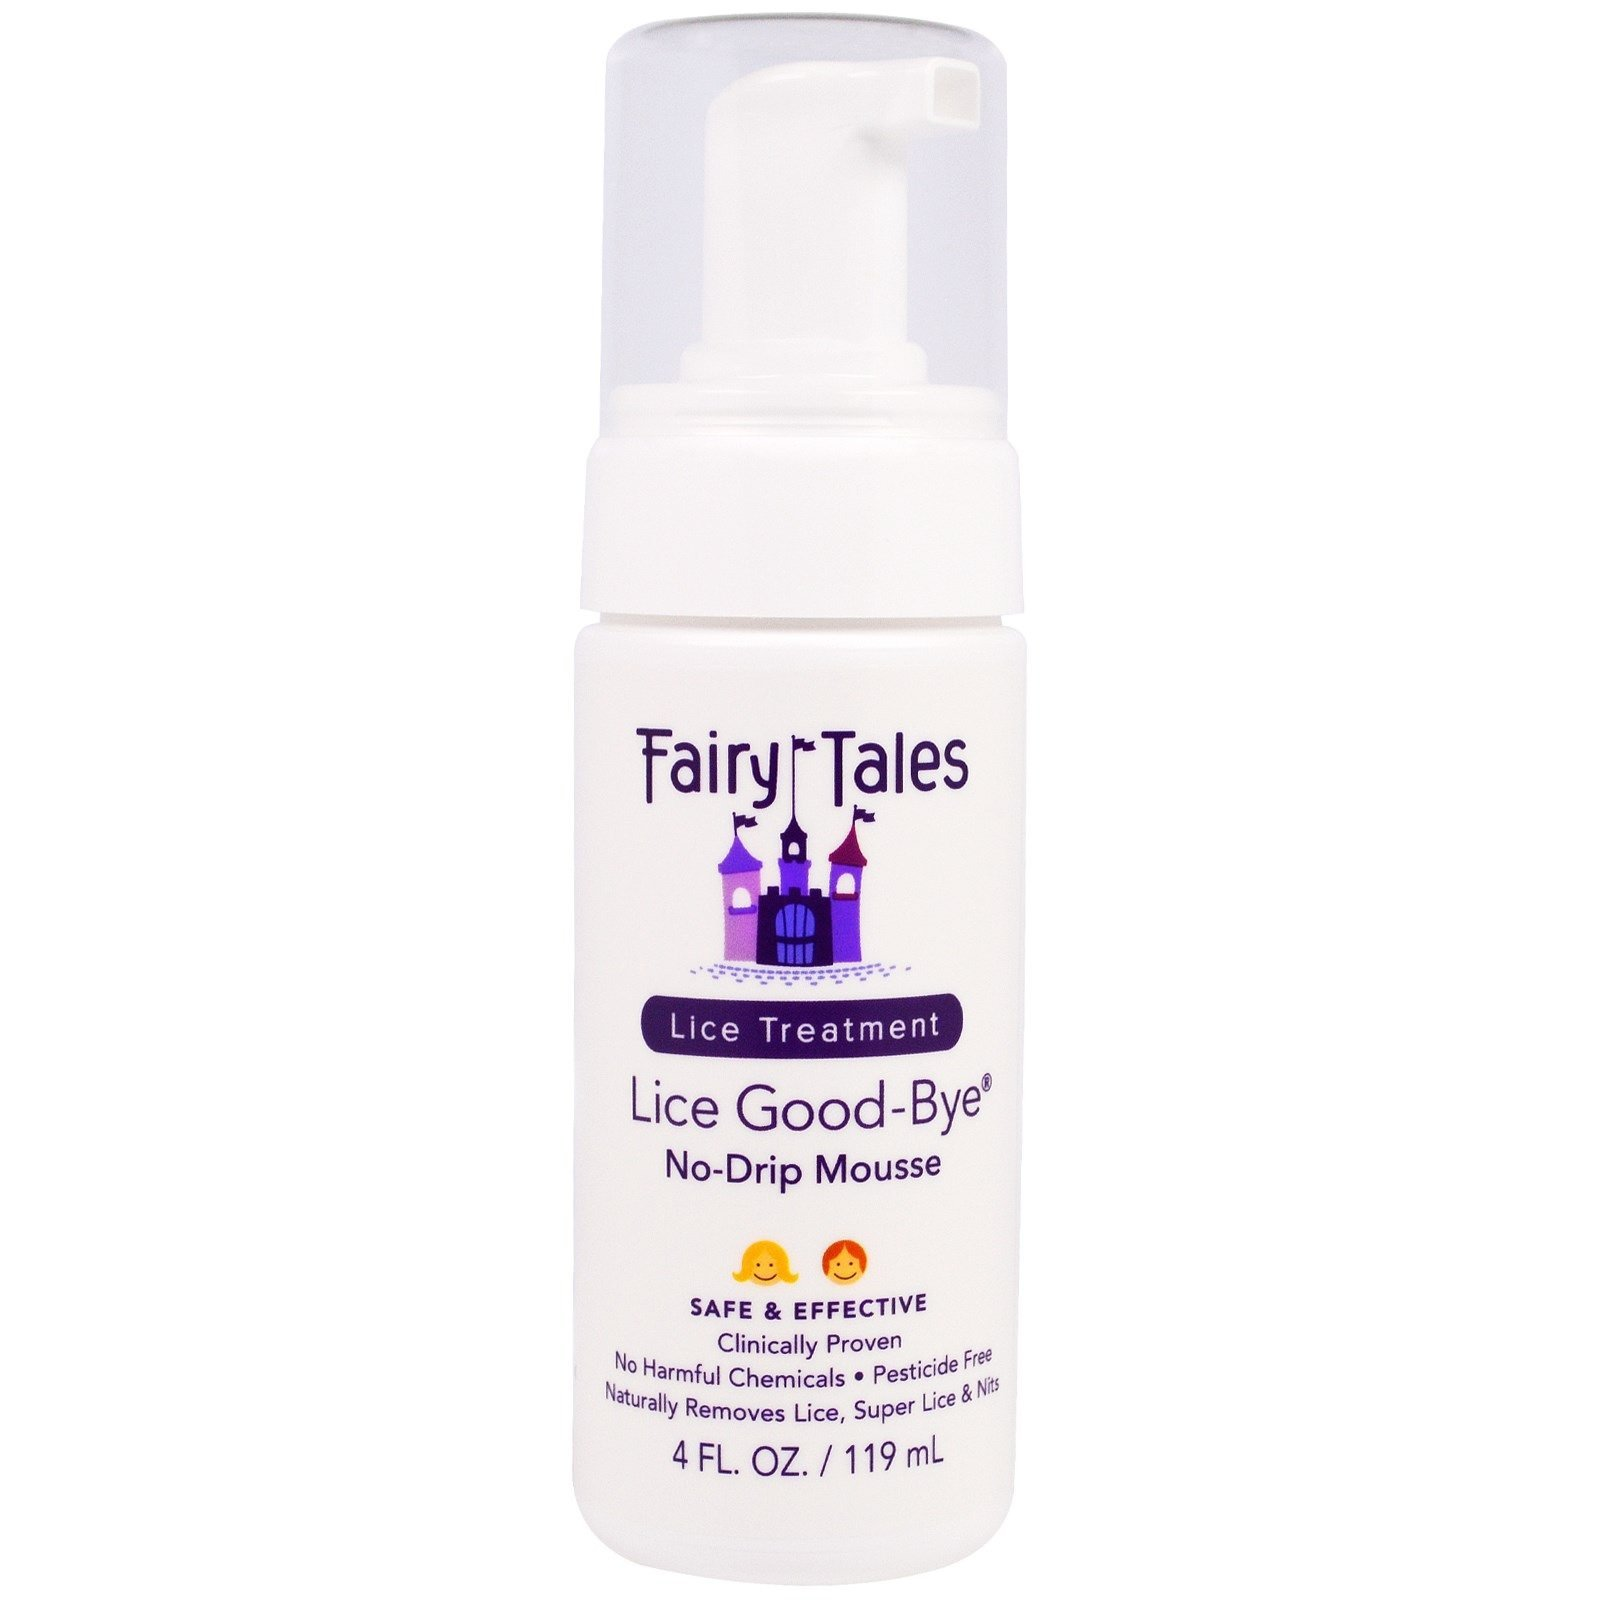 Lice Goodbye Nit Removal Kit with Comb by Fairy Tales for Kids - 4 oz Mousse by Fairy Tales